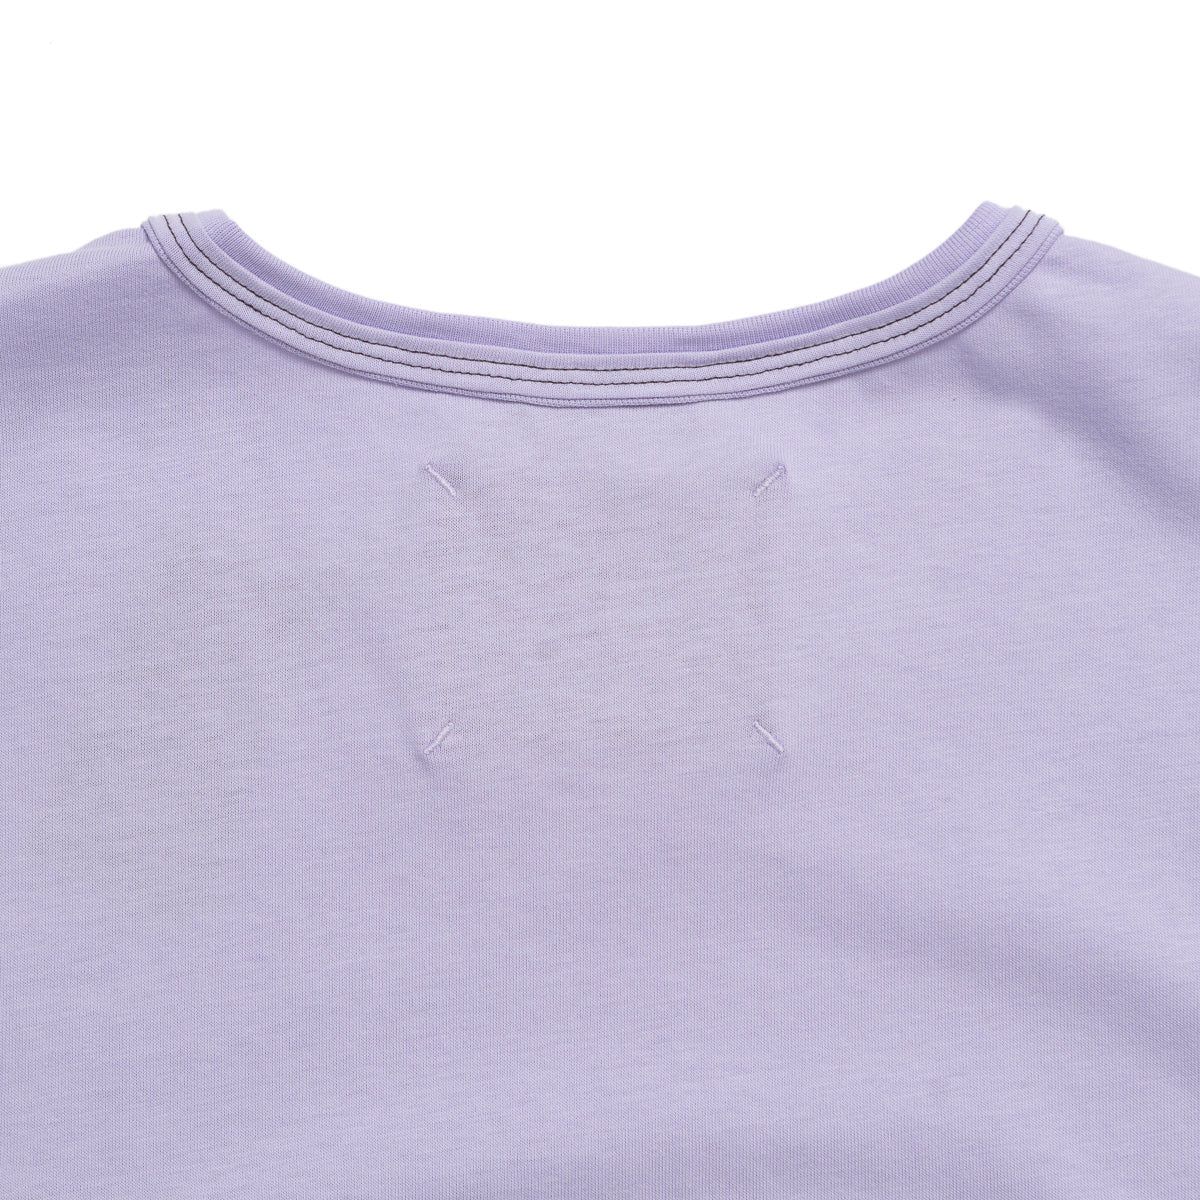 Load image into Gallery viewer, Chrystie Small Classic Logo T-Shirts_Lavender